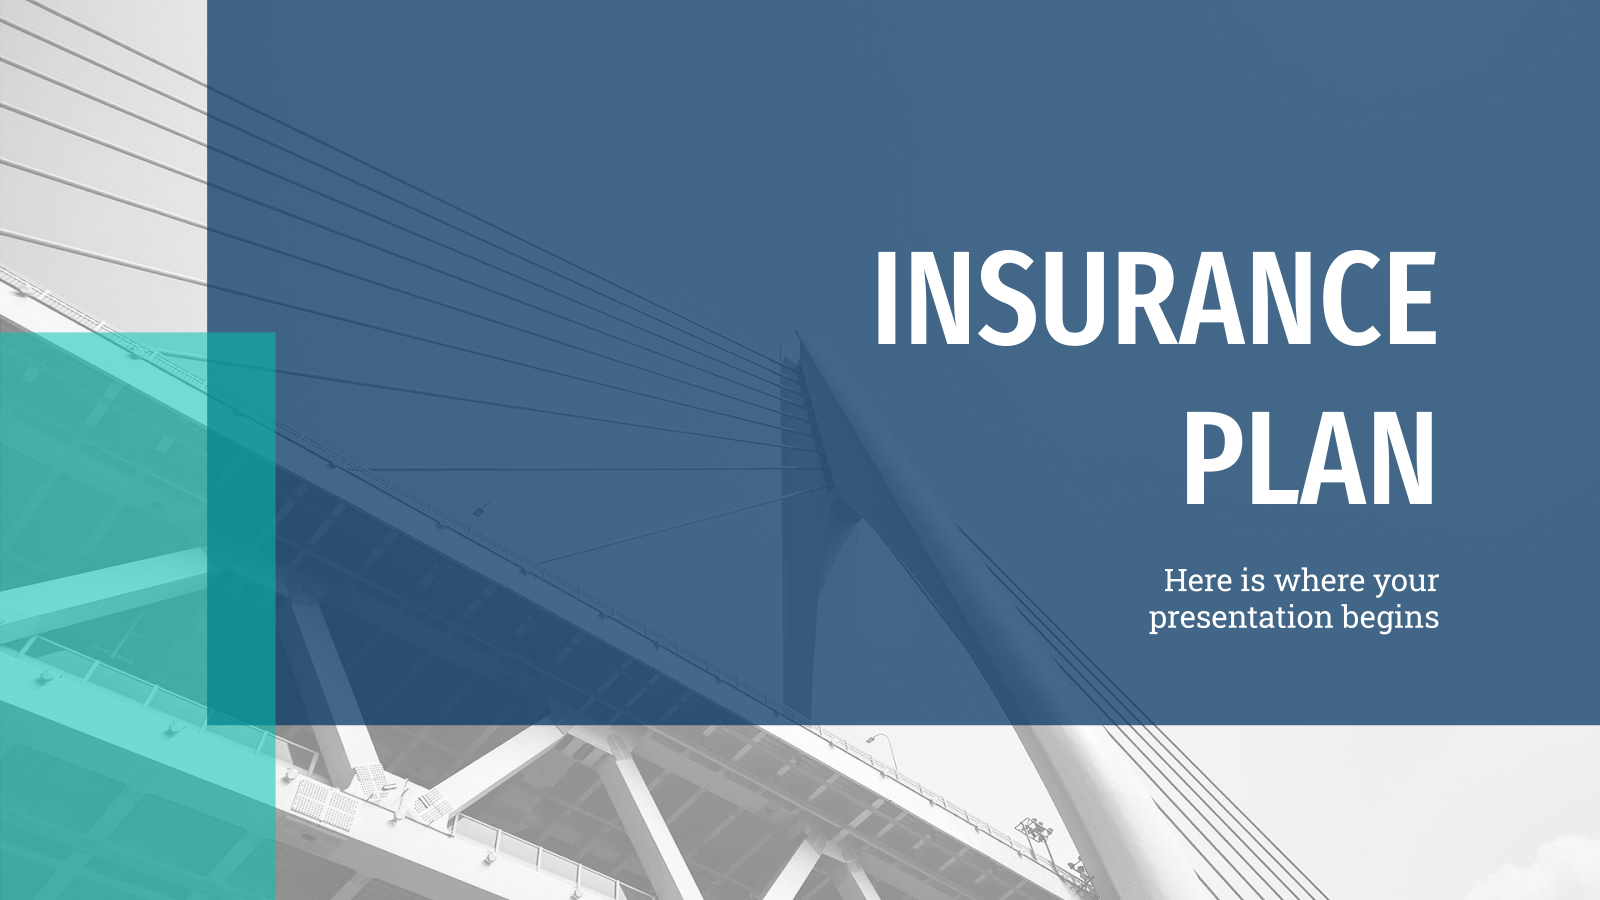 Insurance Plan presentation template